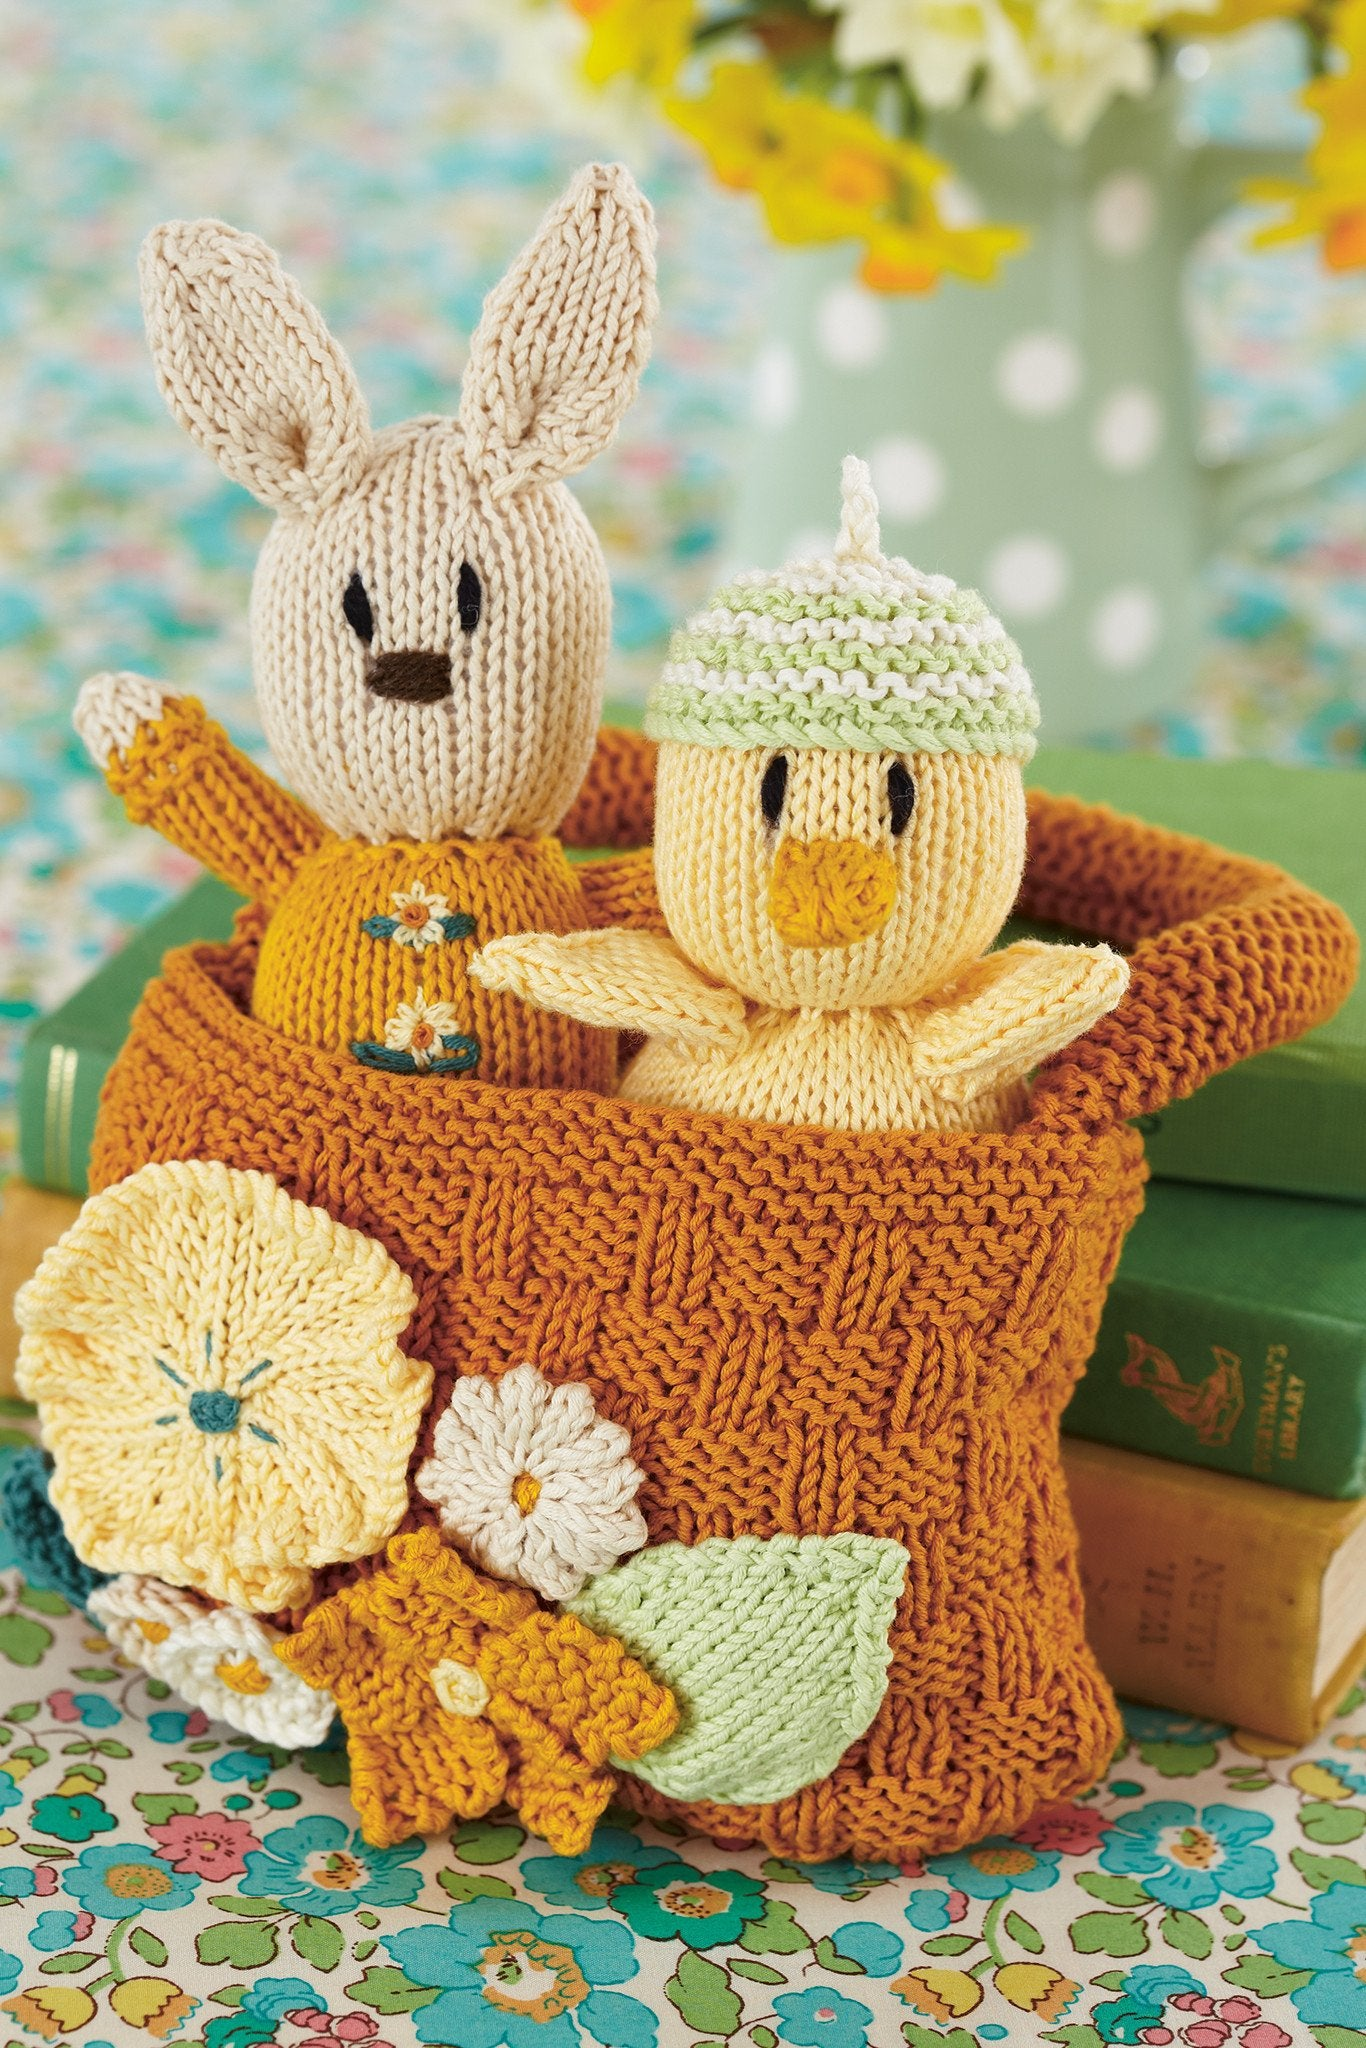 Rabbit And Chick In Basket Knitting Patterns The Knitting Network